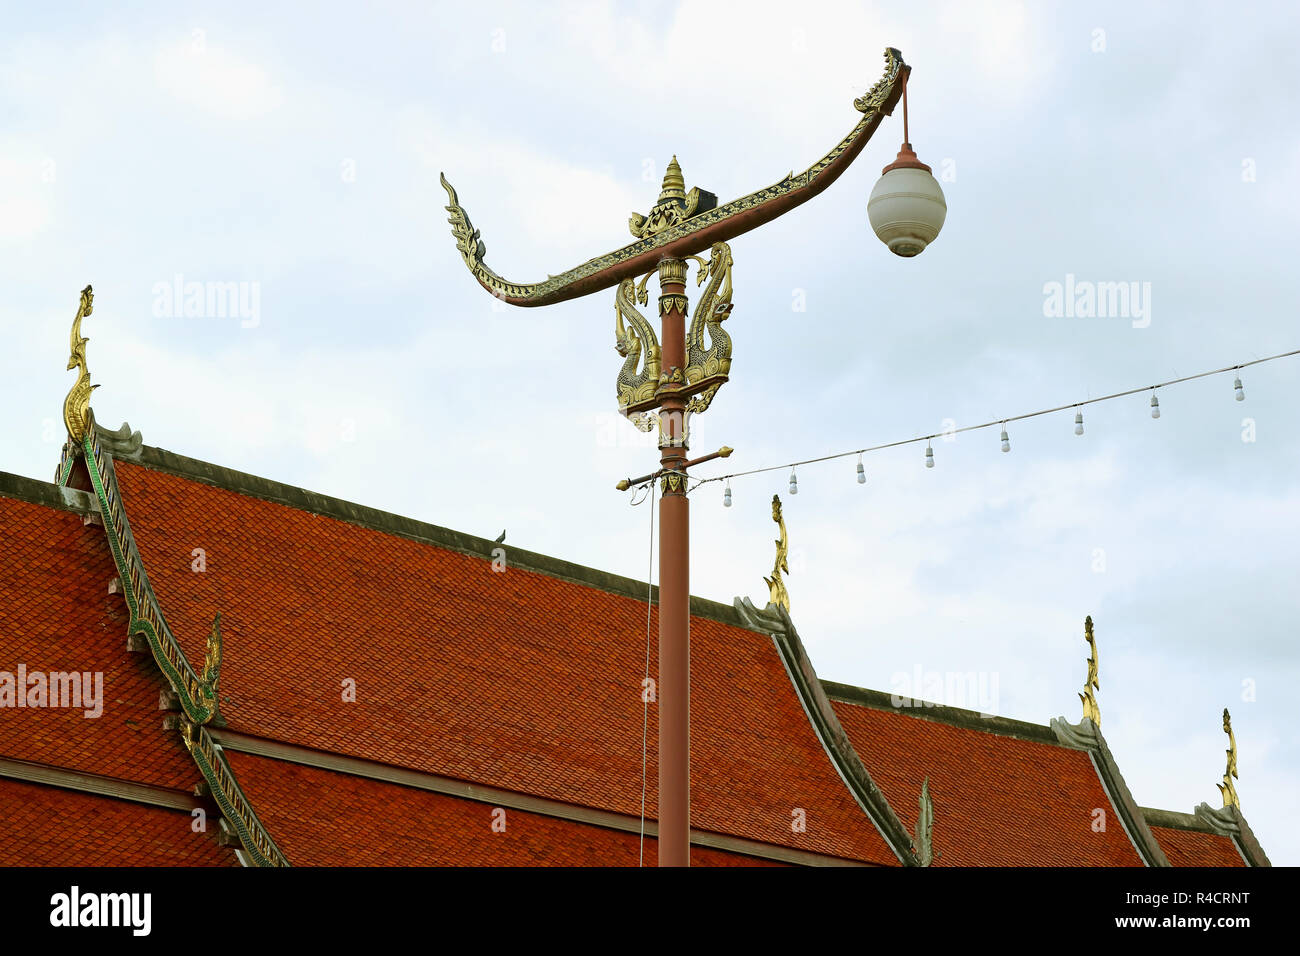 Thai Vintage Racing Boat Shaped Street Lamp against Temple's Tiled Roof and Cloudy Sky, Historic Place in Nan Province, Thailand Stock Photo